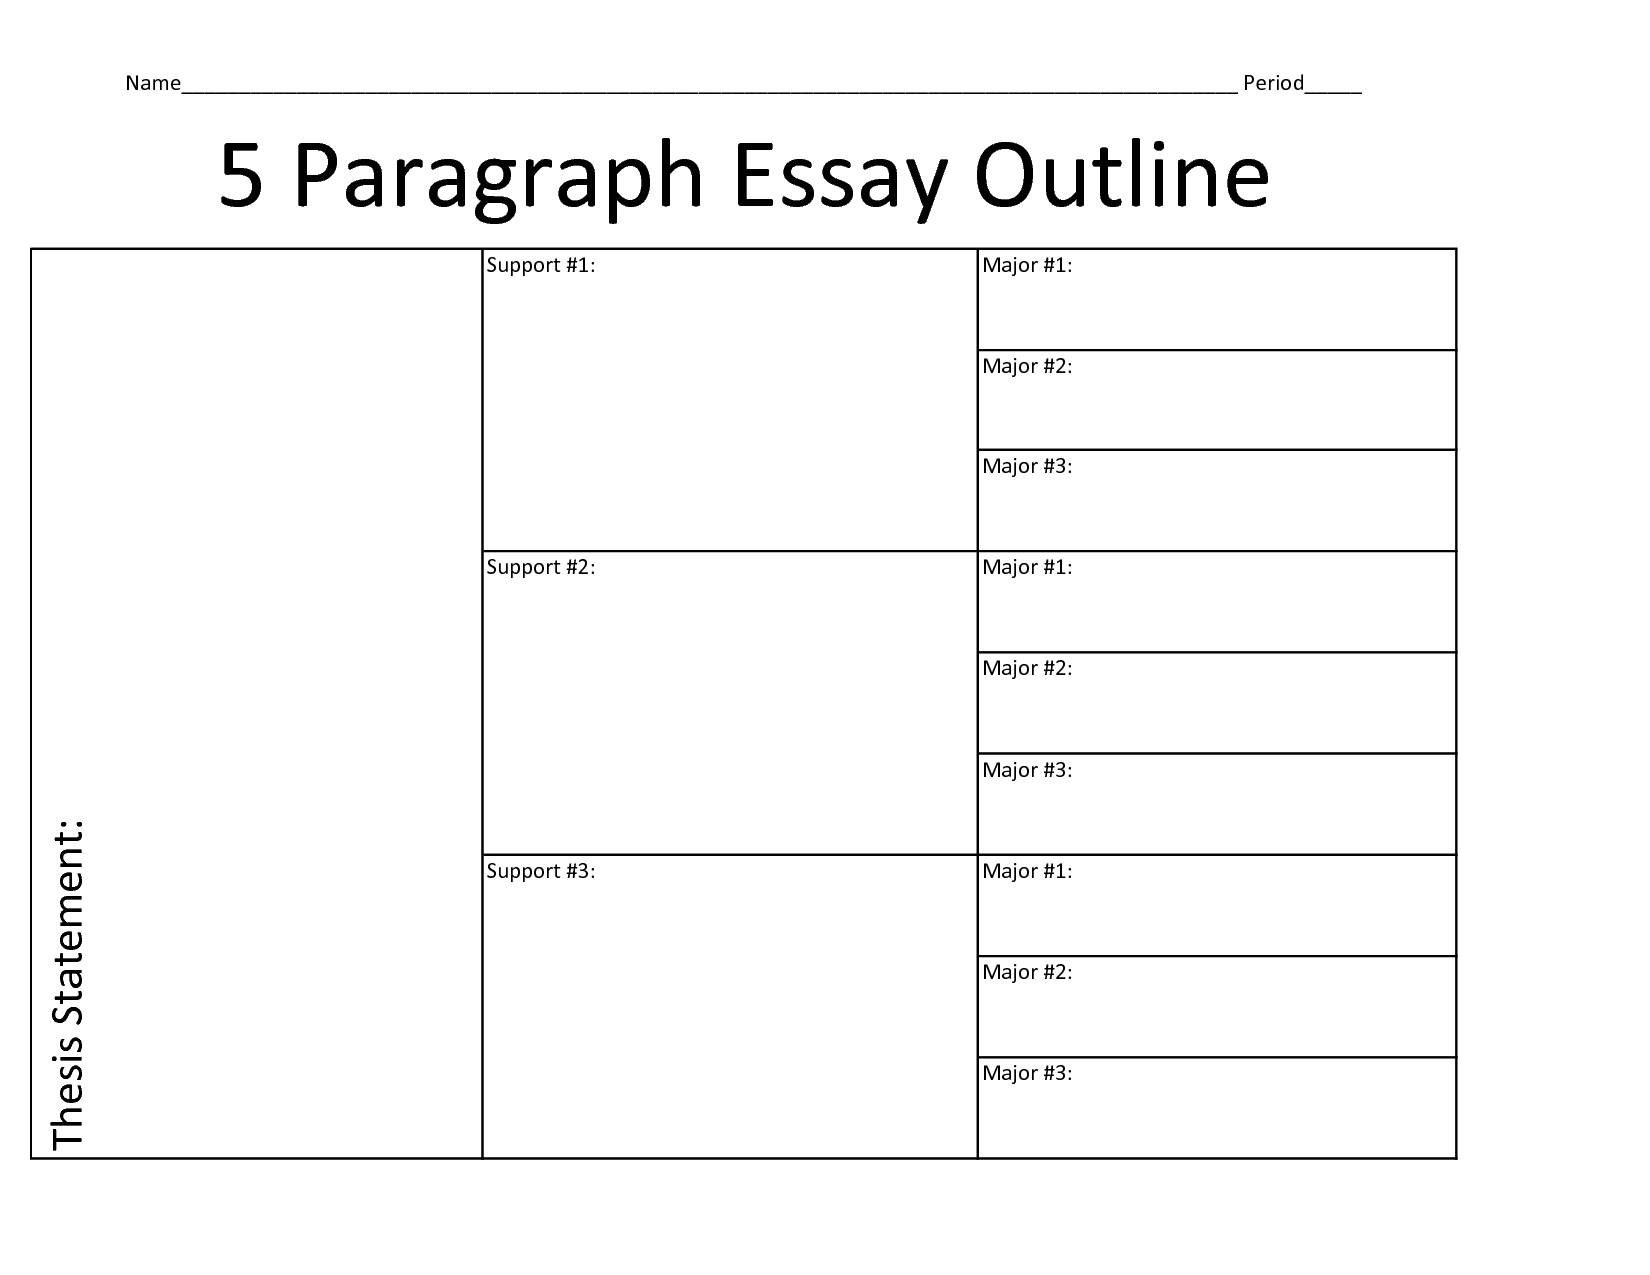 essay outline template | Paragraph Essay Outline- Blank | write ...